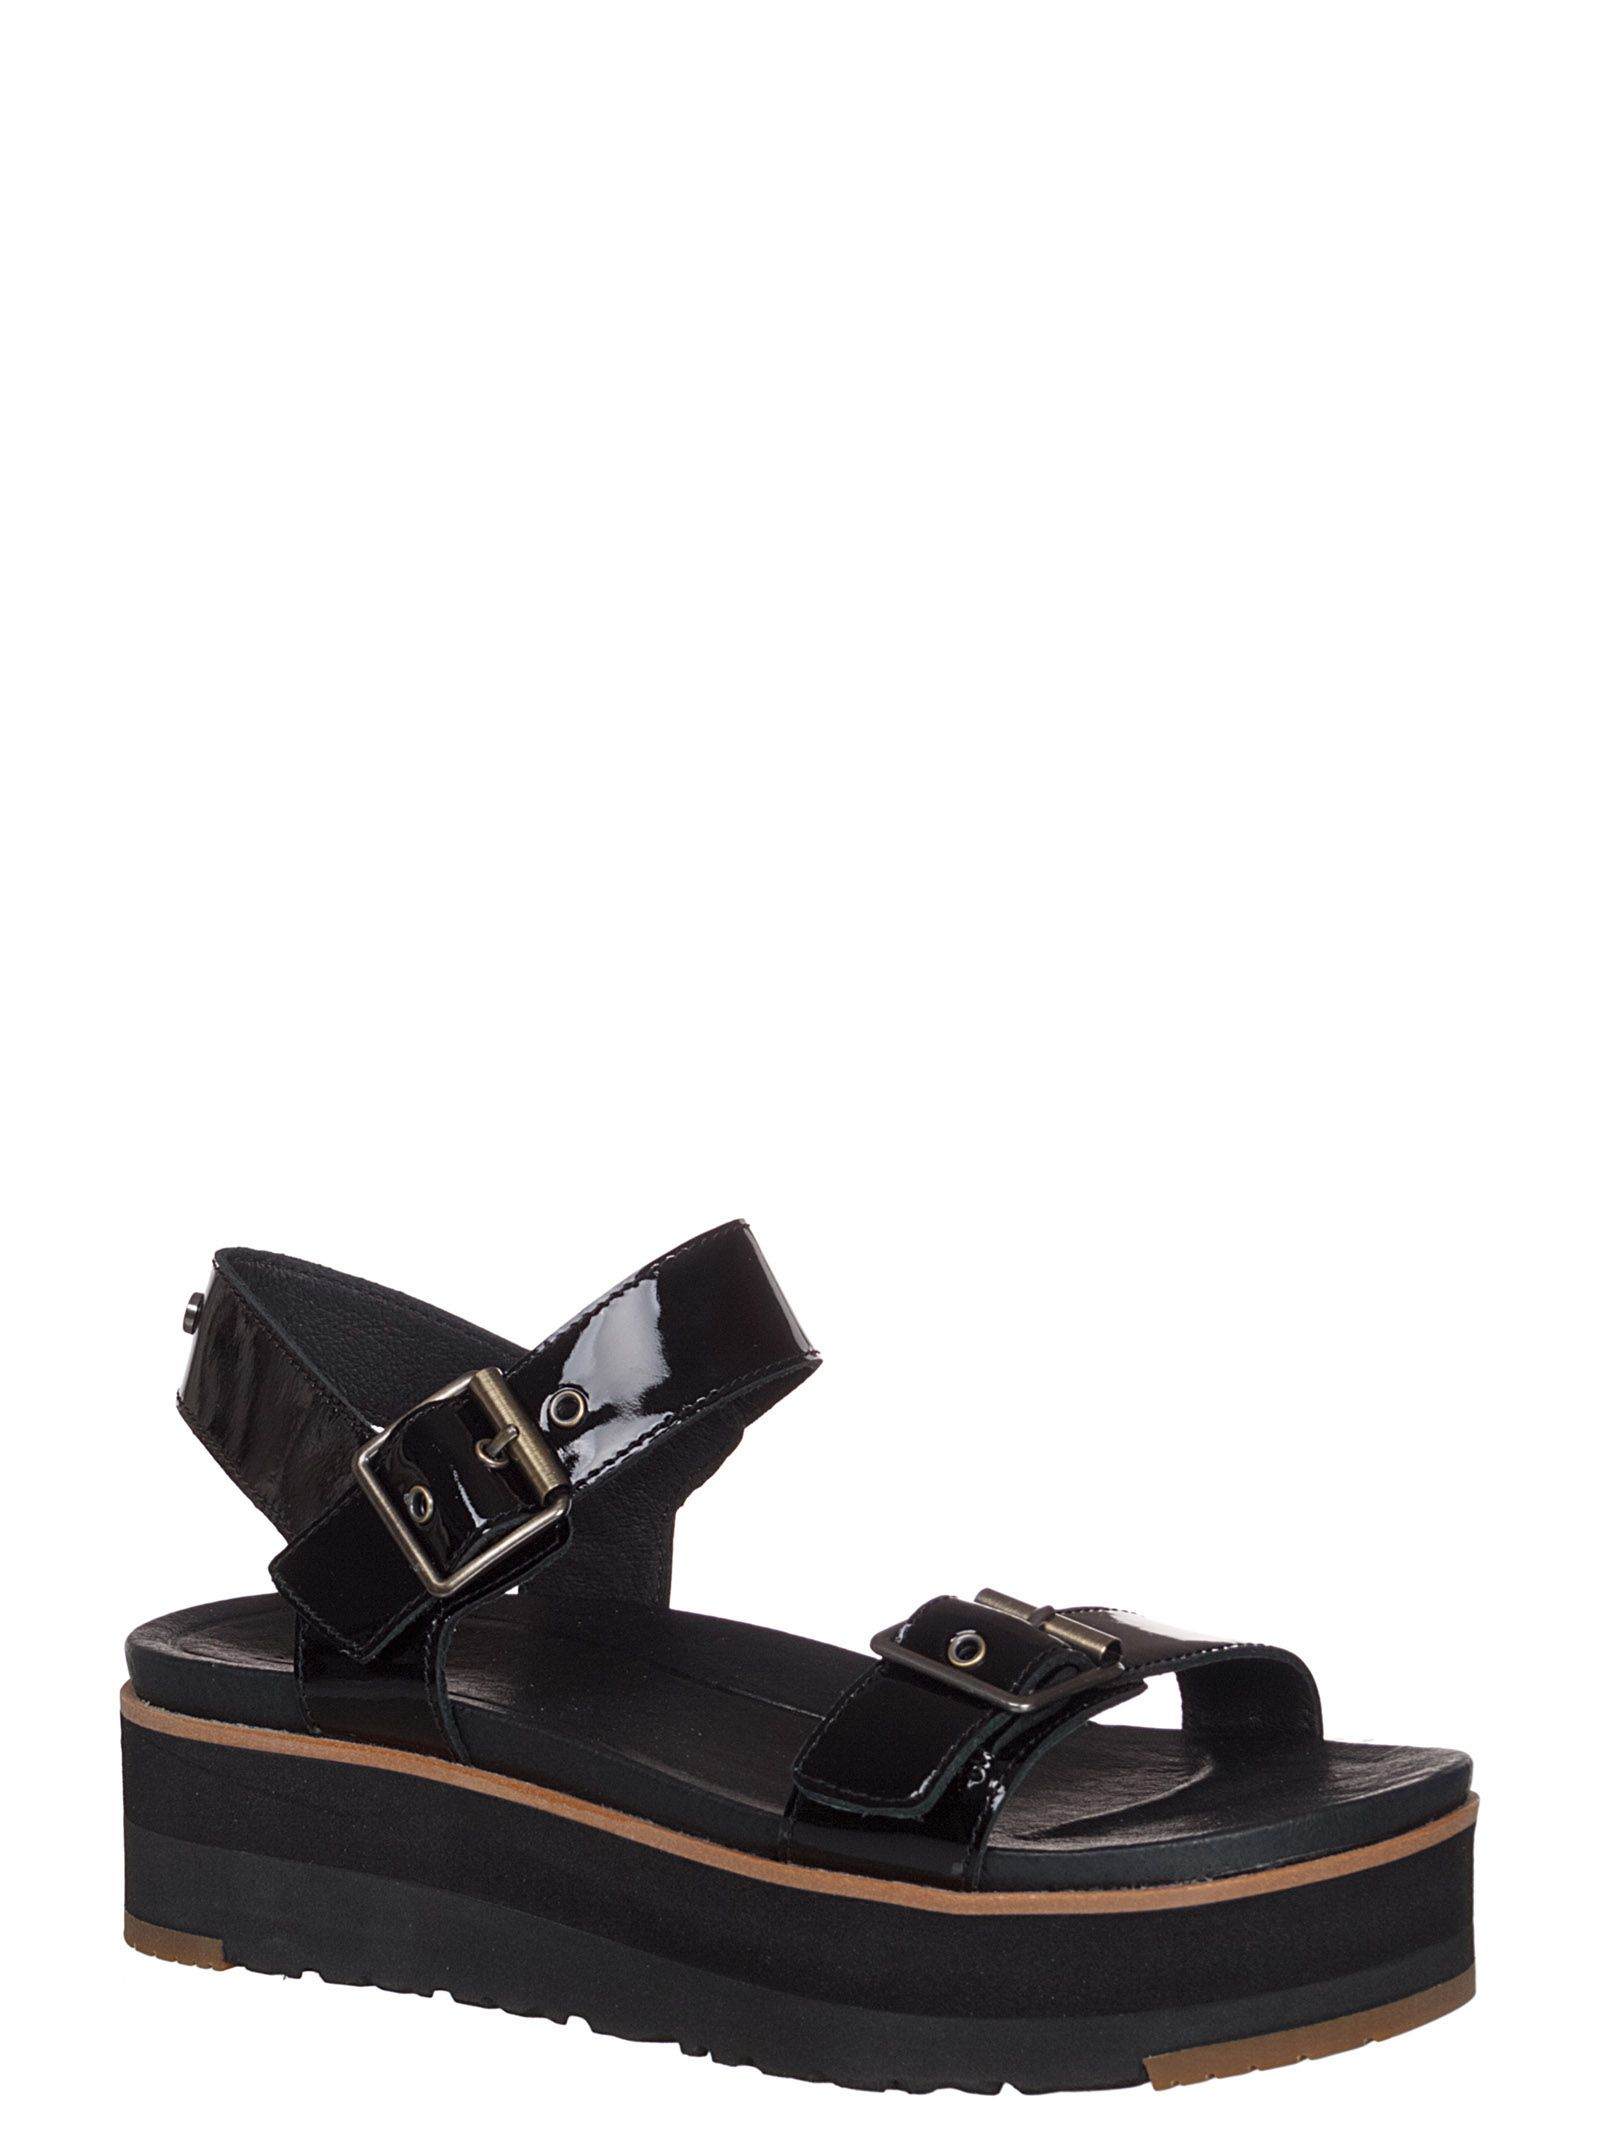 76c4bd34ec73 UGG Angie Sandals - Black UGG Angie Sandals - Black ...